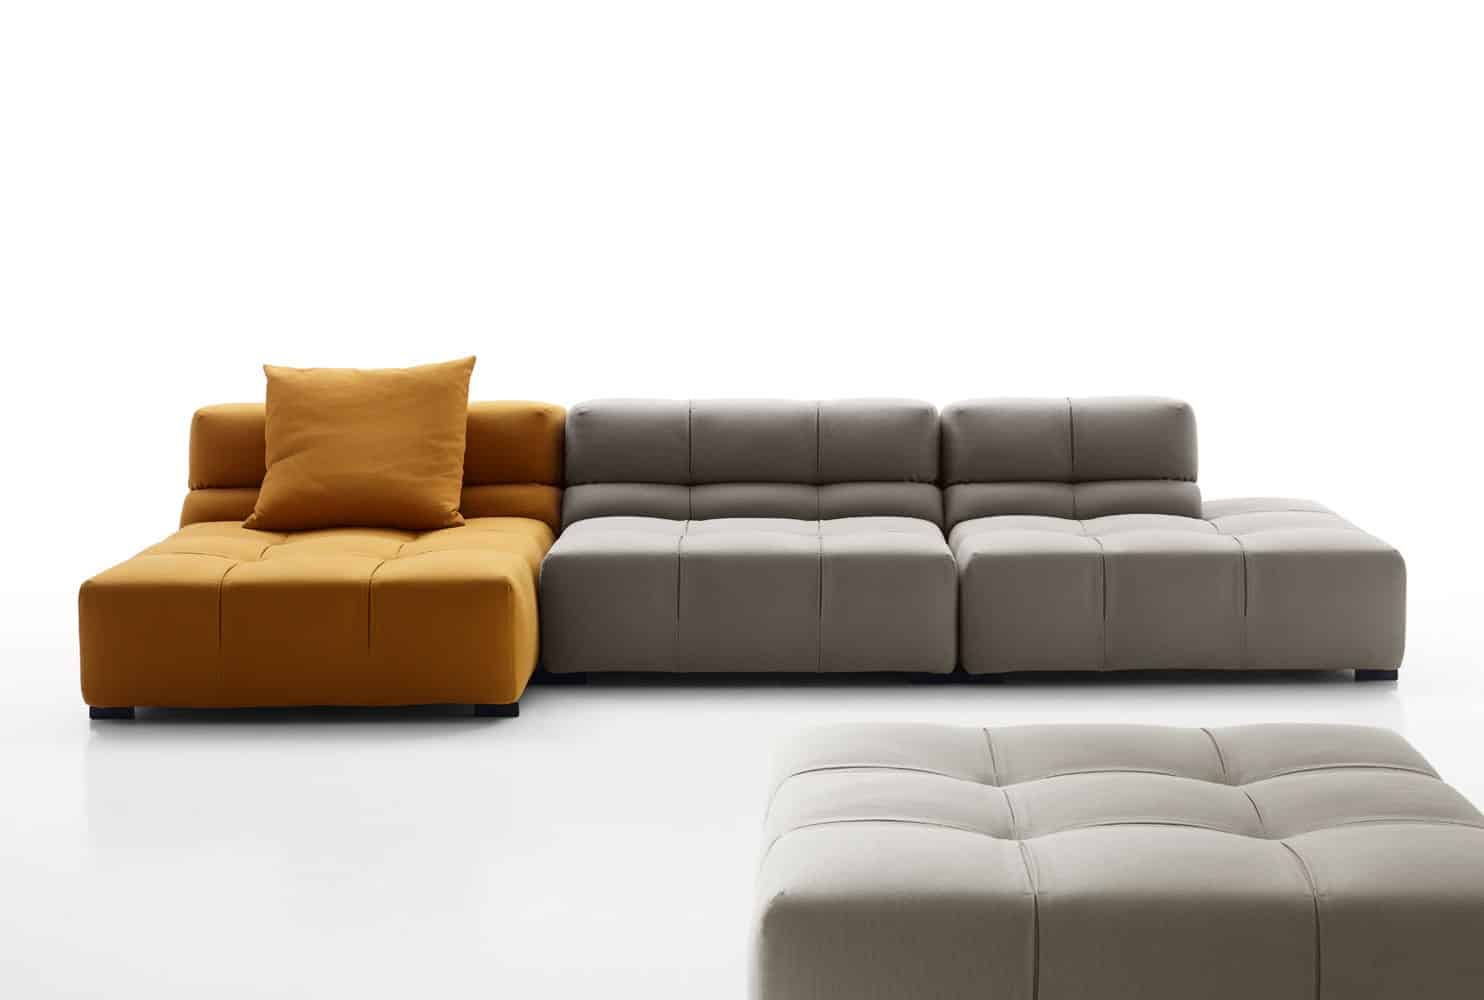 Trendy Sofas This Trendy Cubic Sofa Is A New Addition To Tufty Time